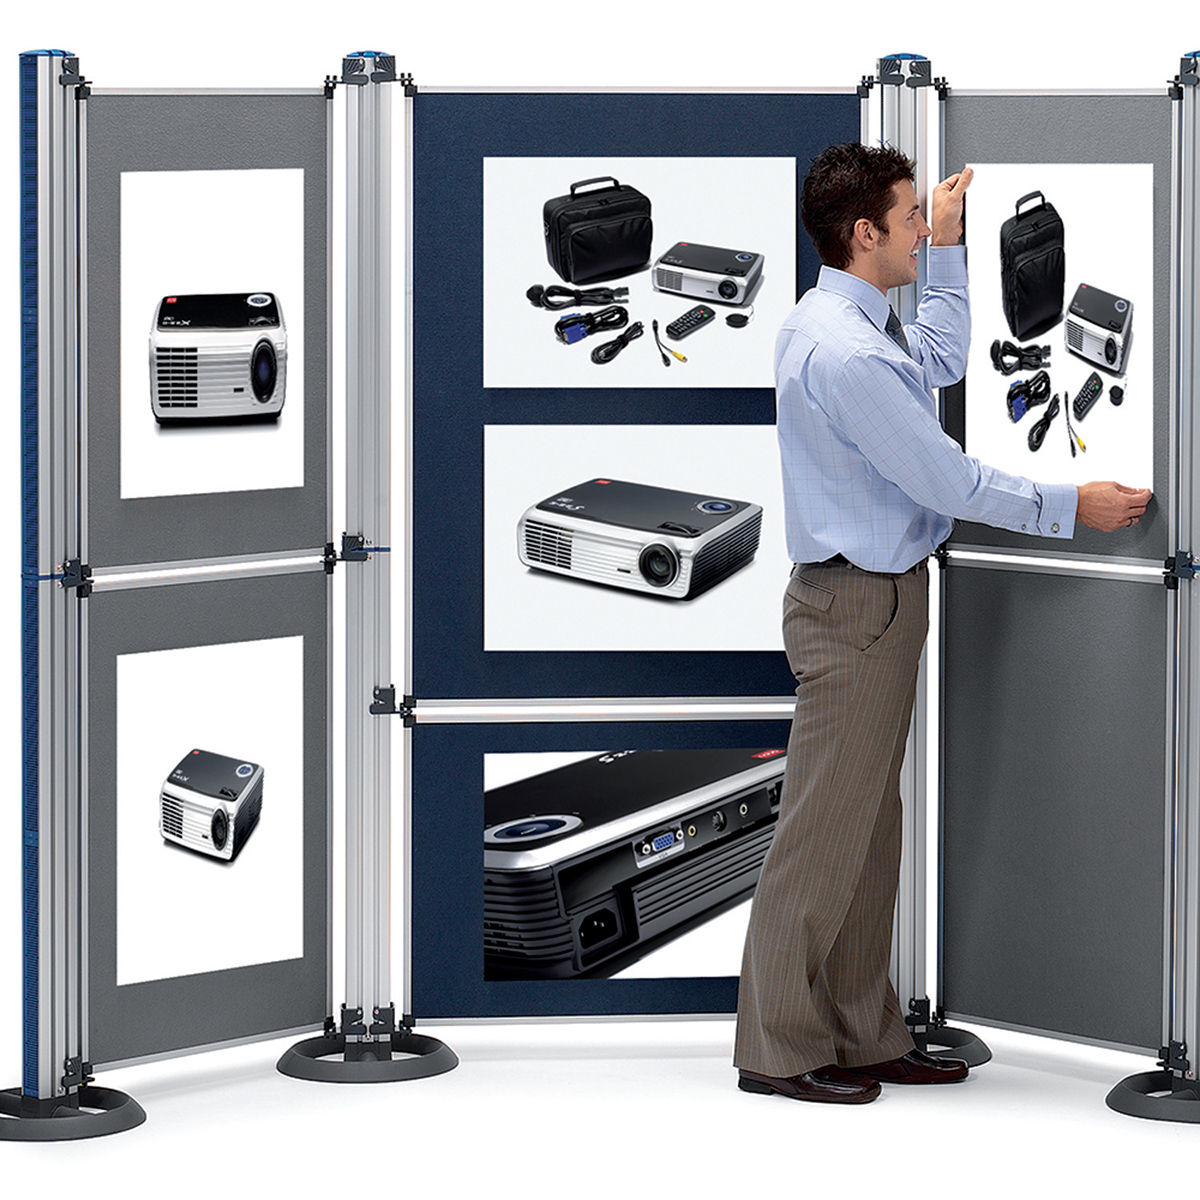 Nobo 1902216 Modular Display System - Upright and Base